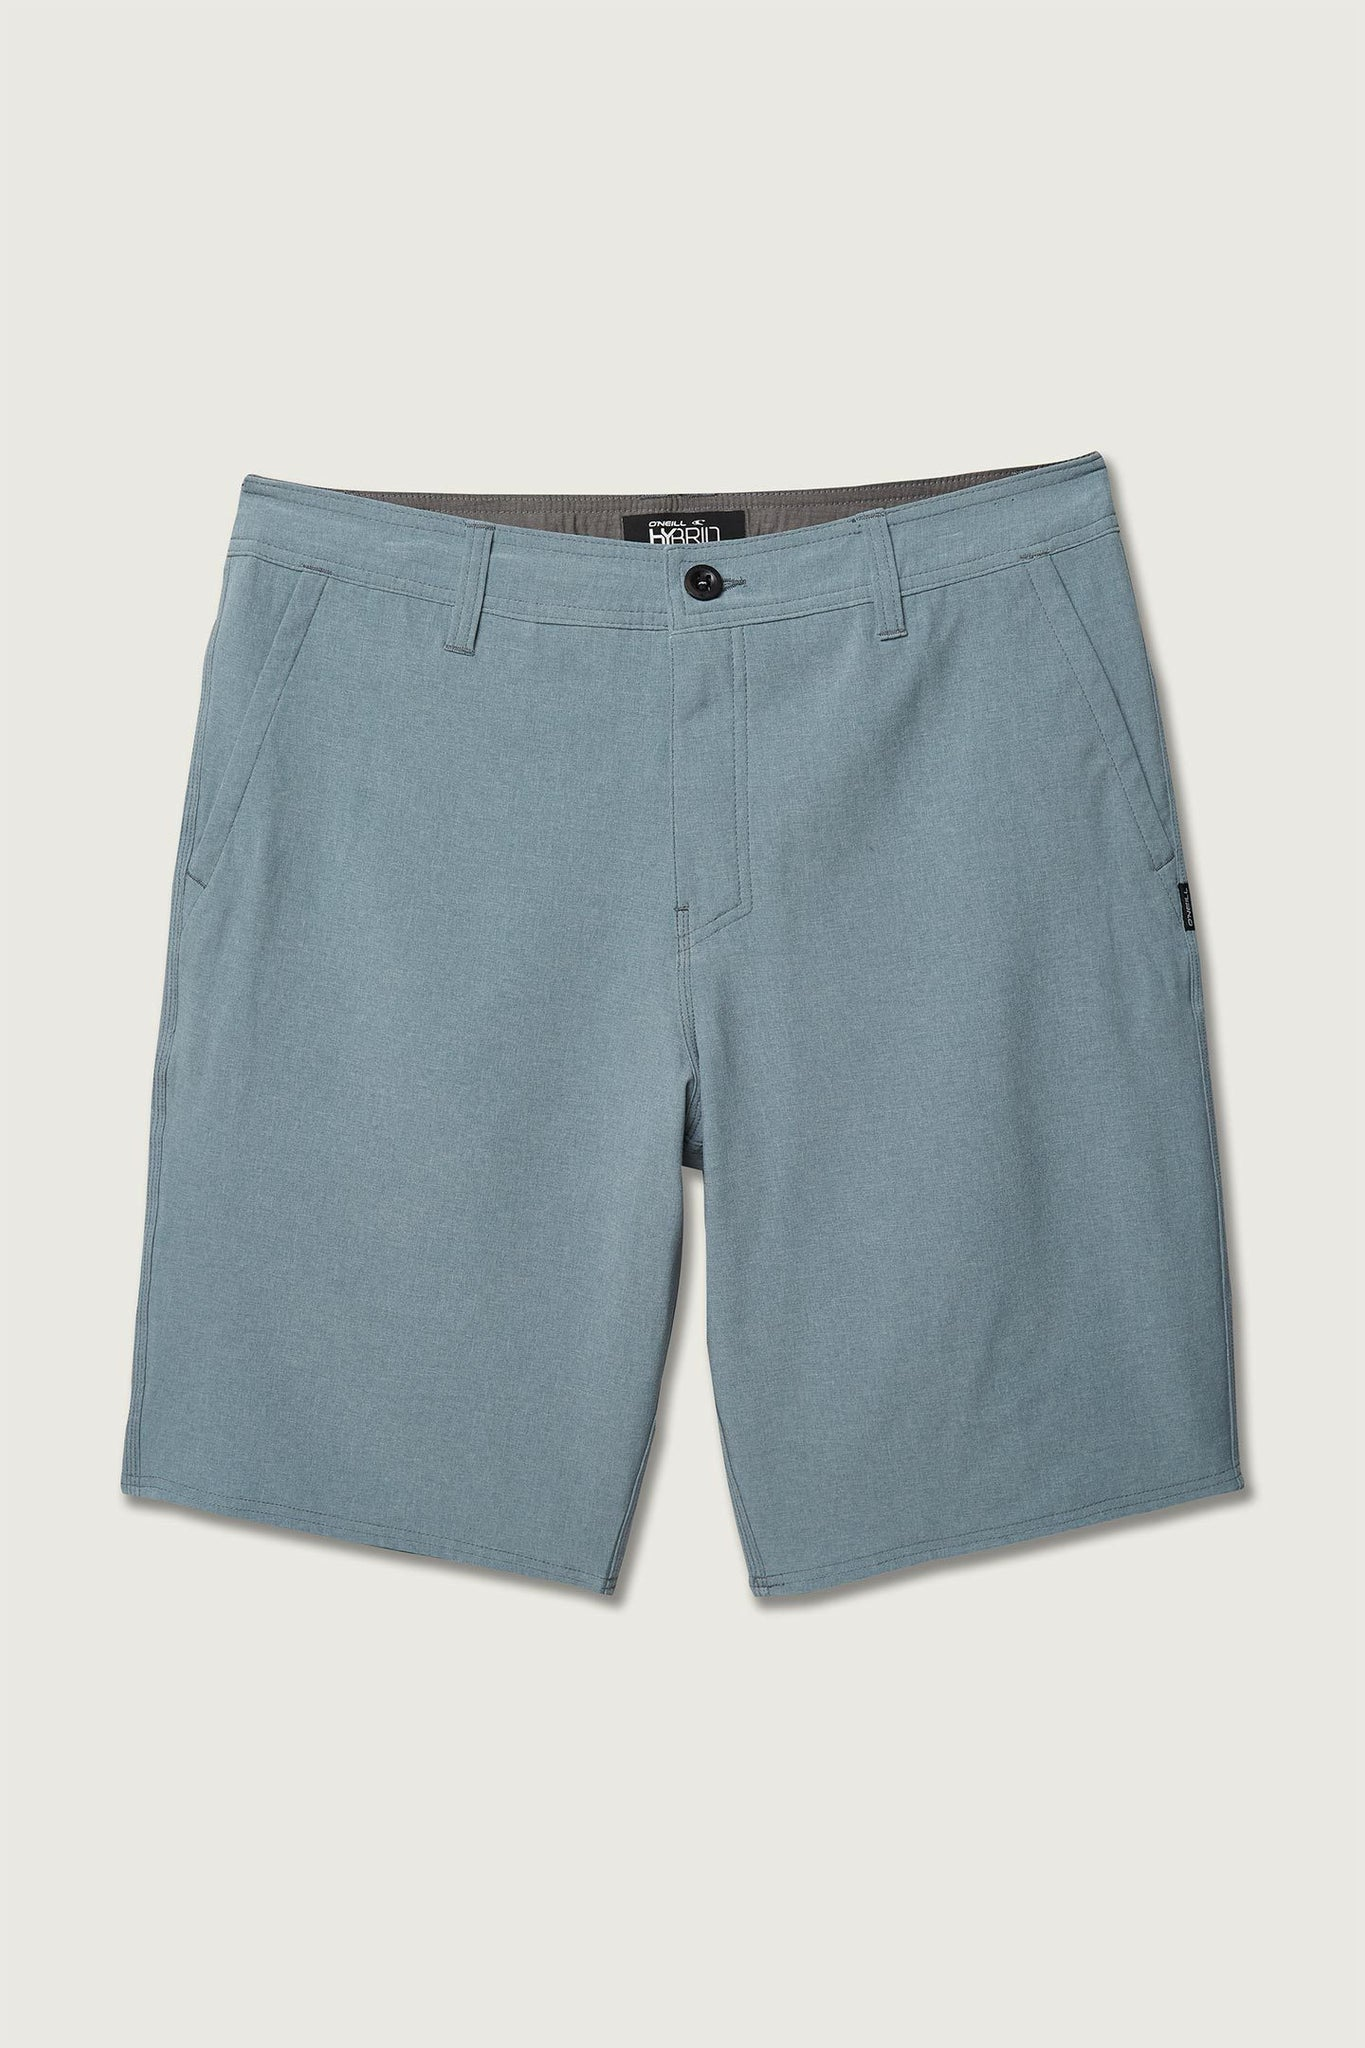 Little Boys Reserve Heather Hybrid Shorts - Smoke Blue | O'Neill